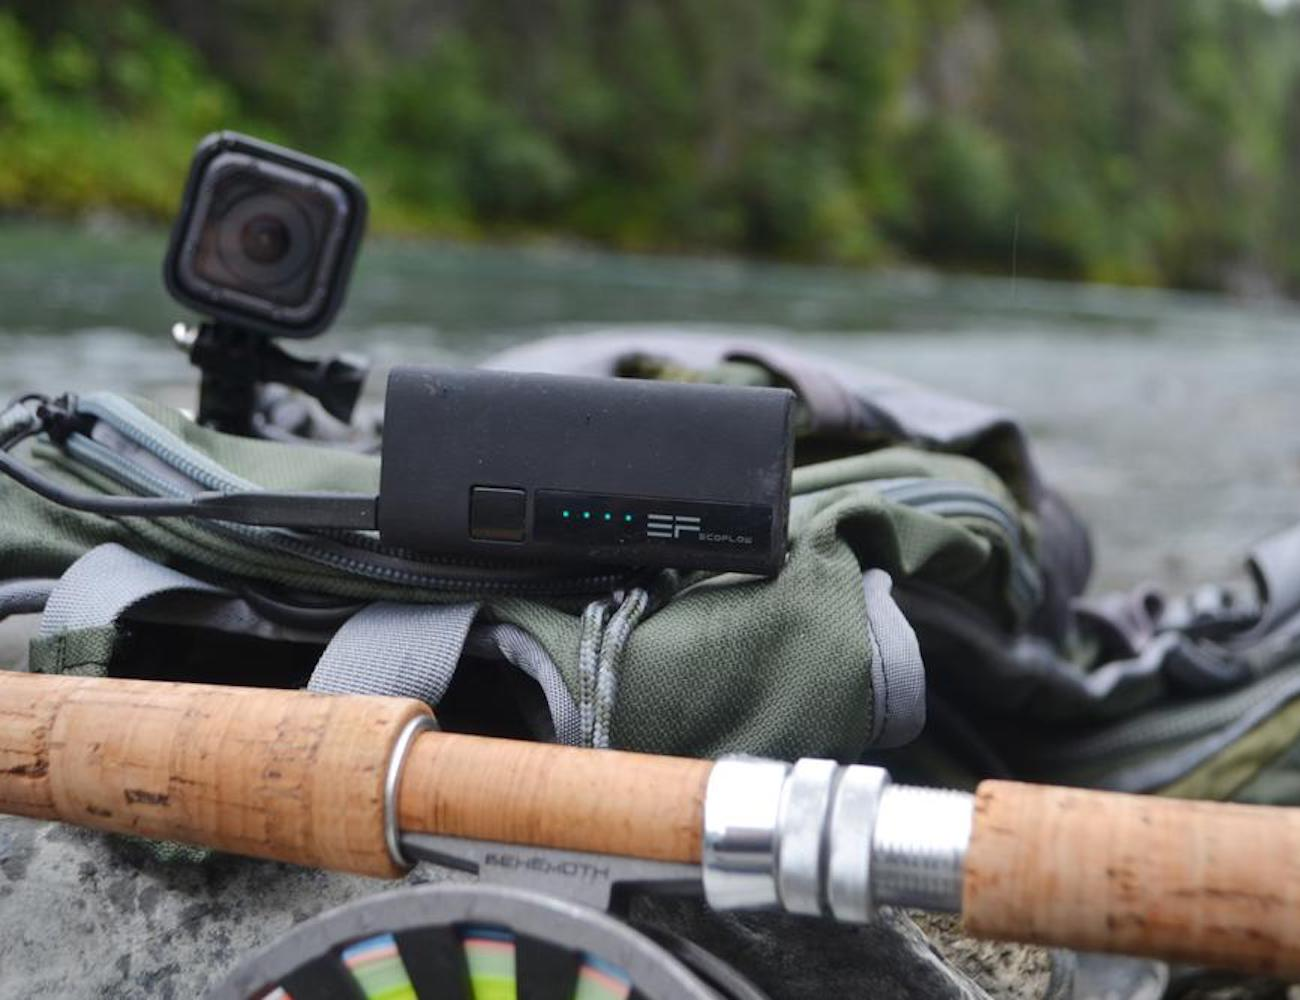 EcoFlow RIVER Rapid Portable Power Station